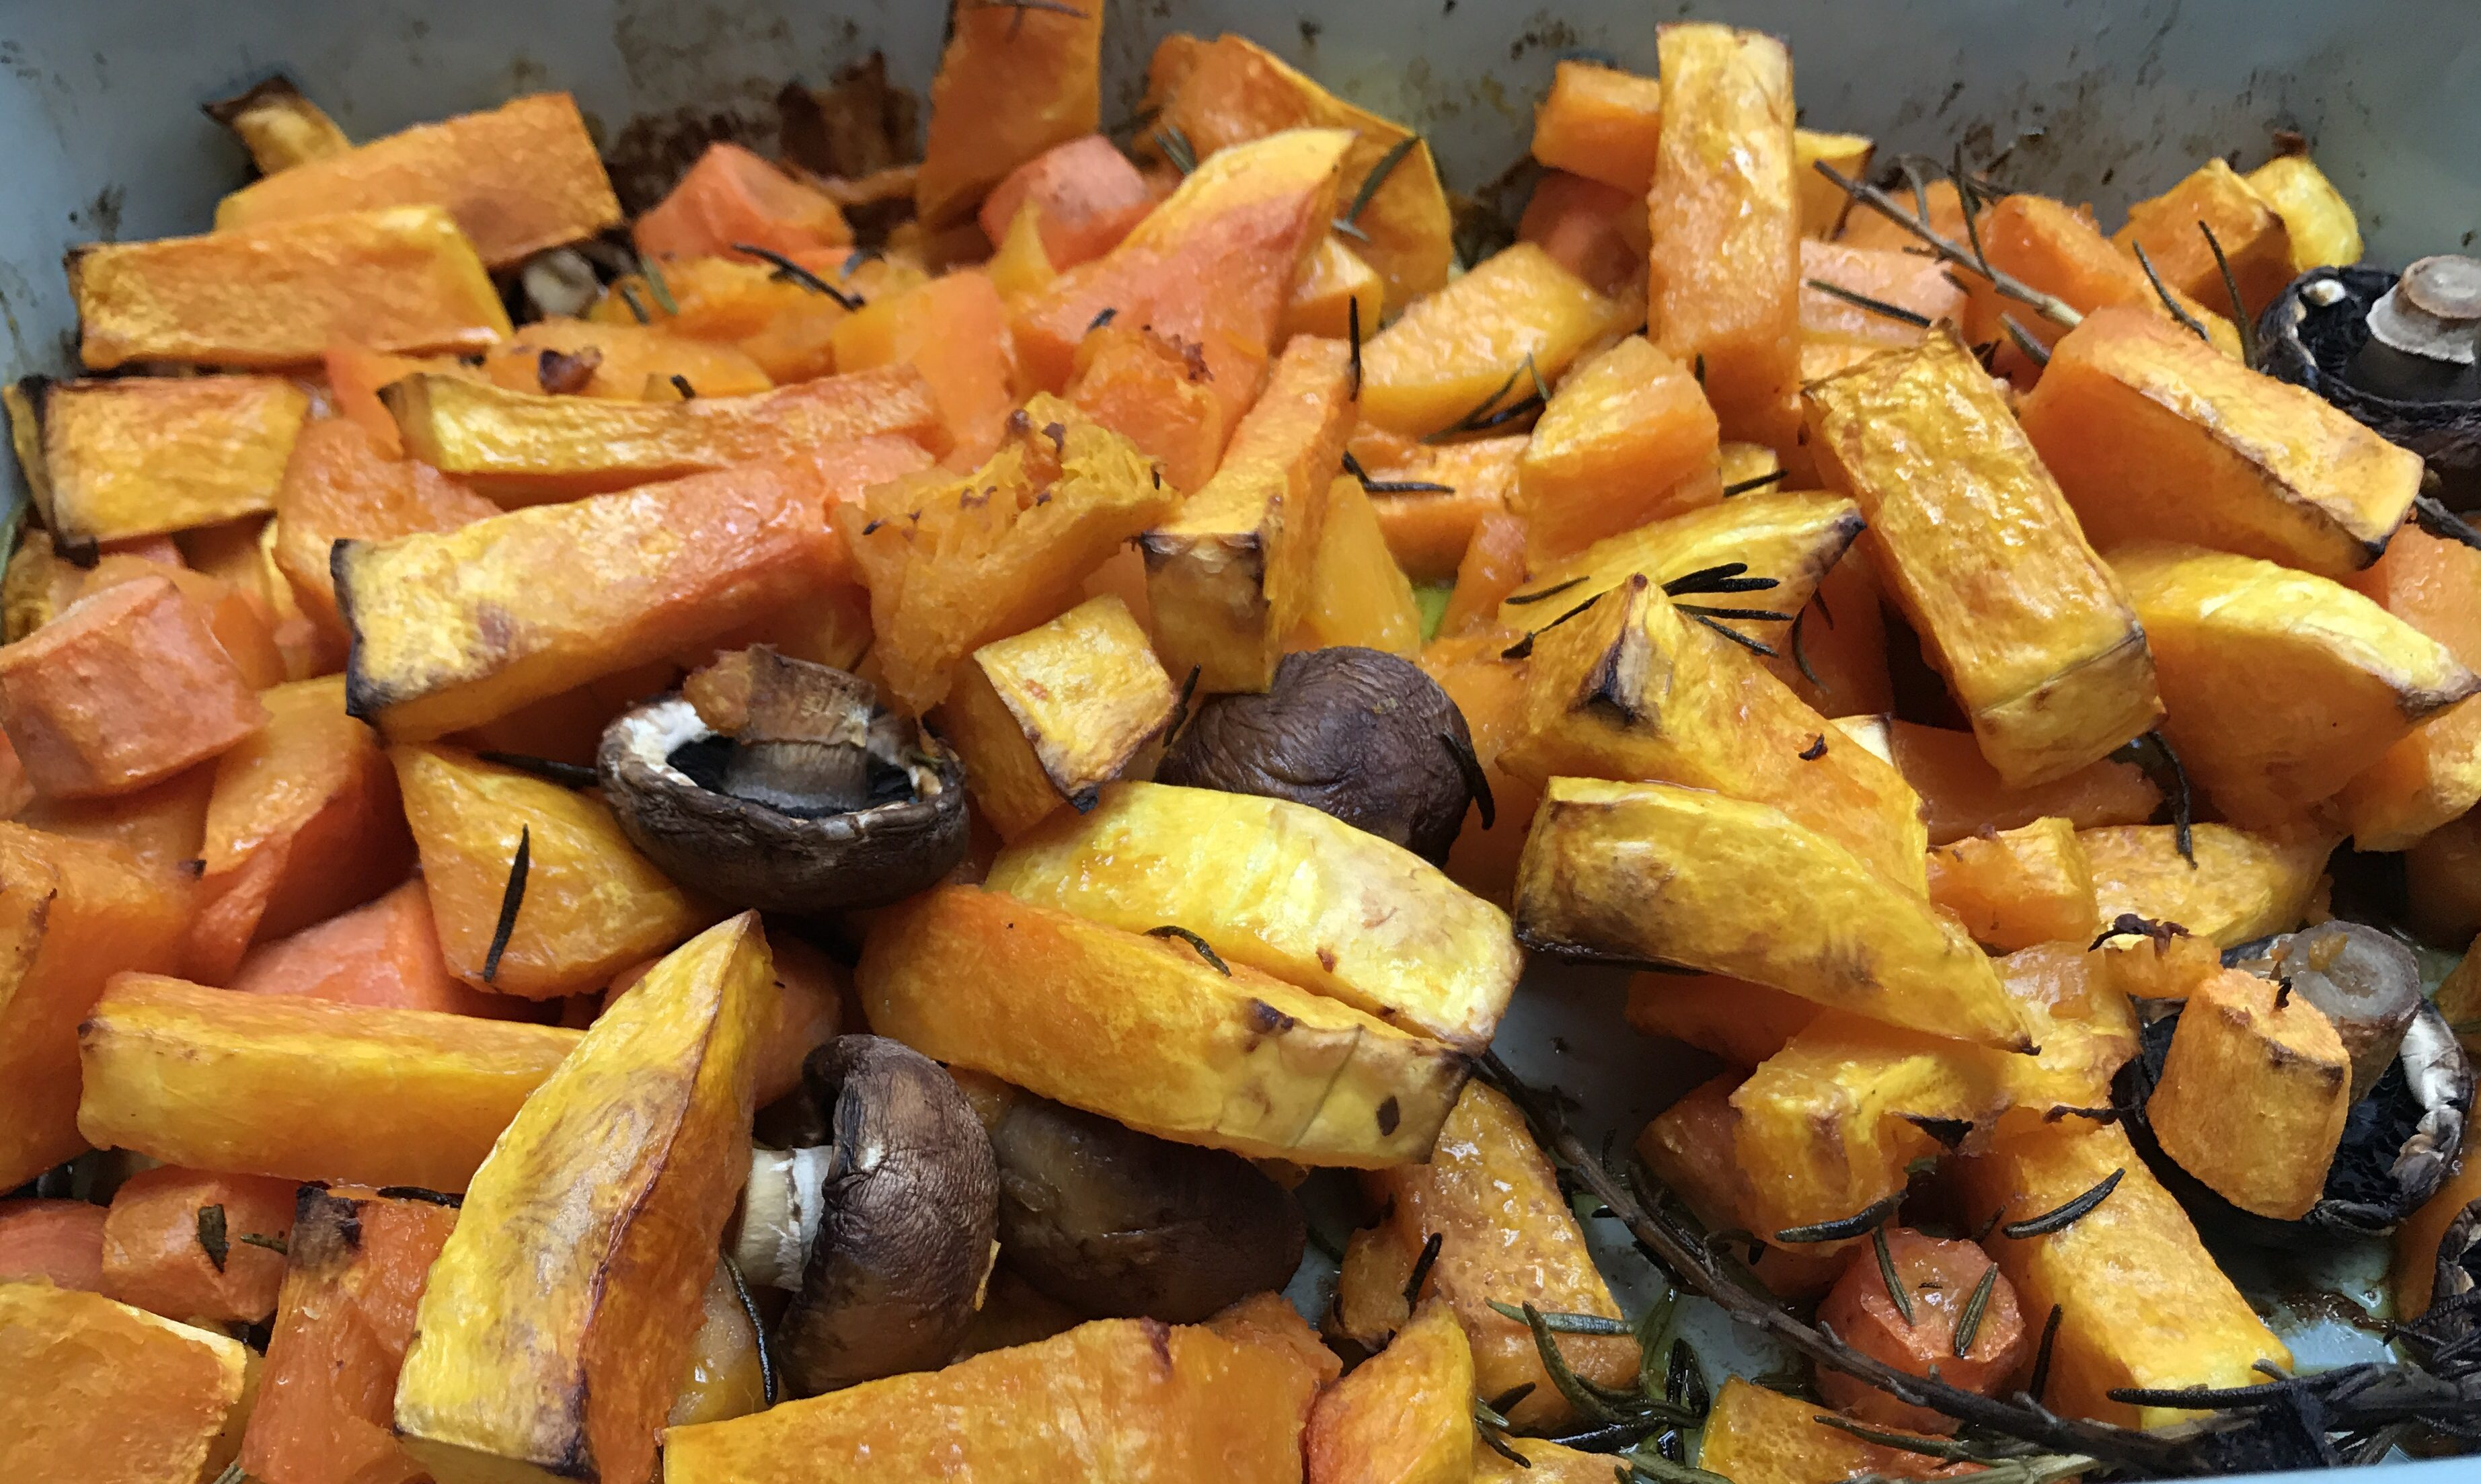 An oven roasted dish of bright yellow butternut squash, orange carrots and juicy chesnut mushrooms.